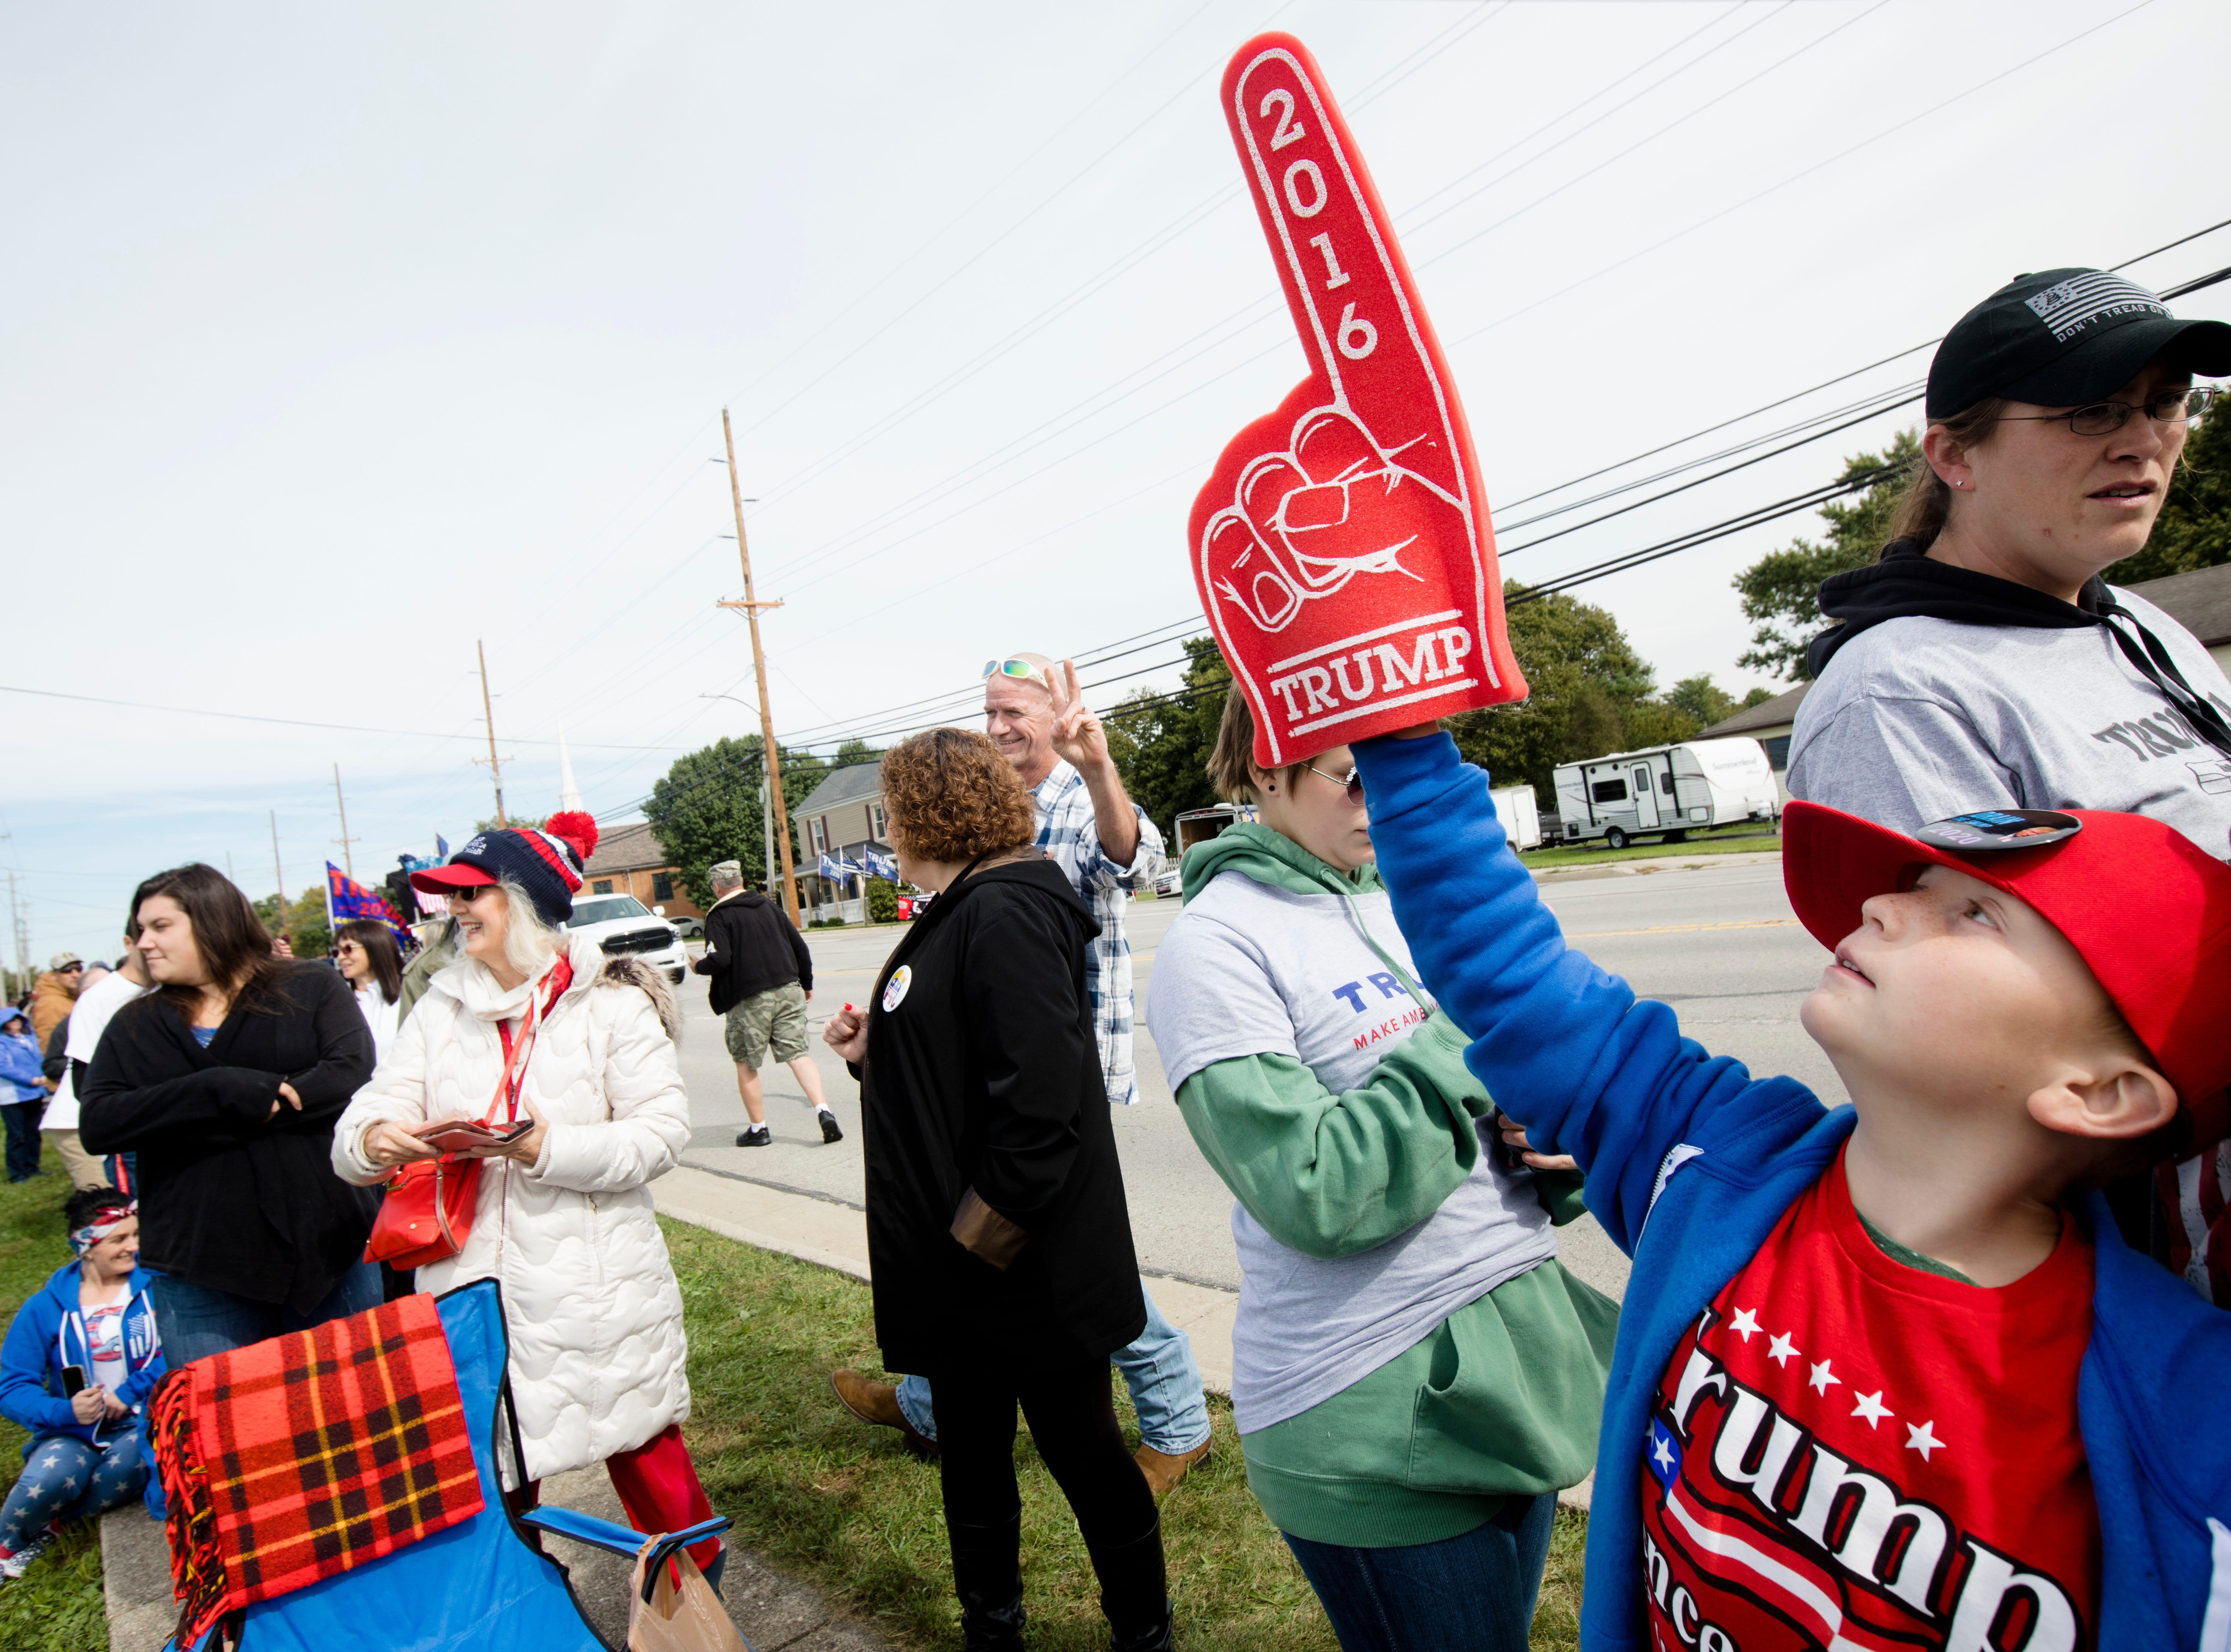 Cody Lawrence, 8, of Centerburg, Ohio, Holds up his hand  while waiting in line for President Donald J. Trump's Make America Great Again Rally in Lebanon, Ohio, on Friday, Oct. 12, 2018.